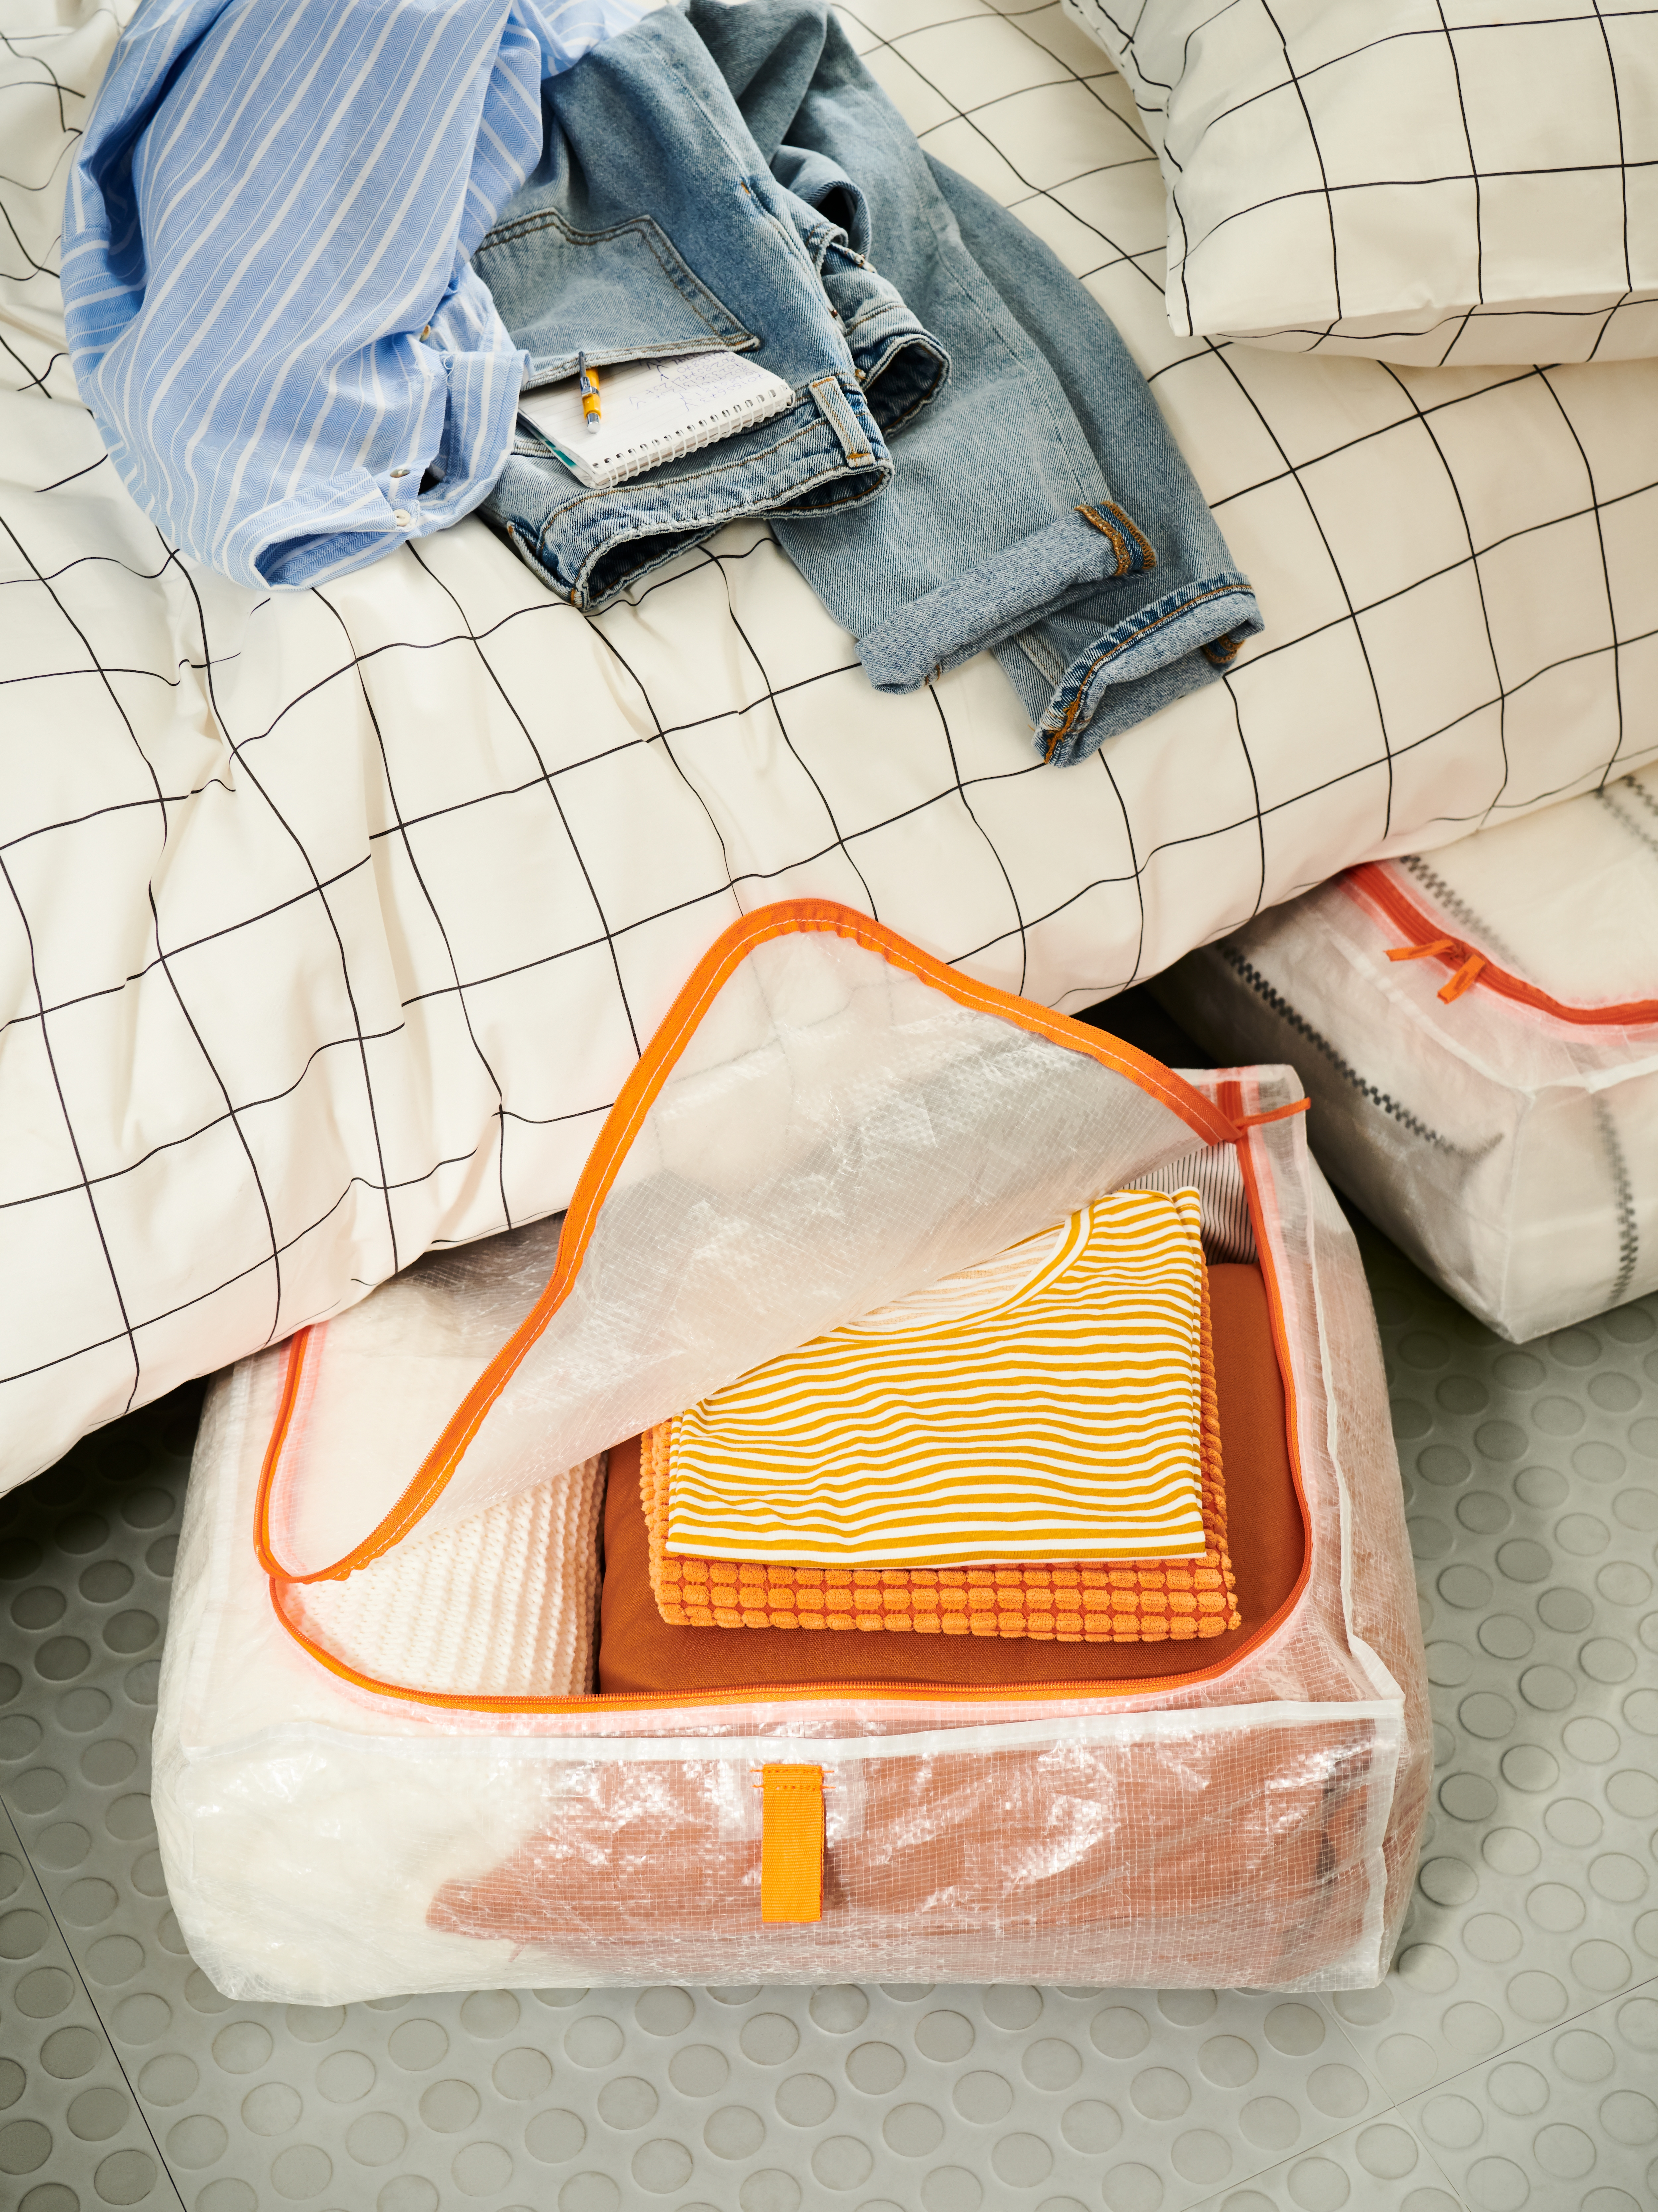 Two storage cases with orange zips sticking out from under a bed made with a white quilt cover with a black-patterned grid.